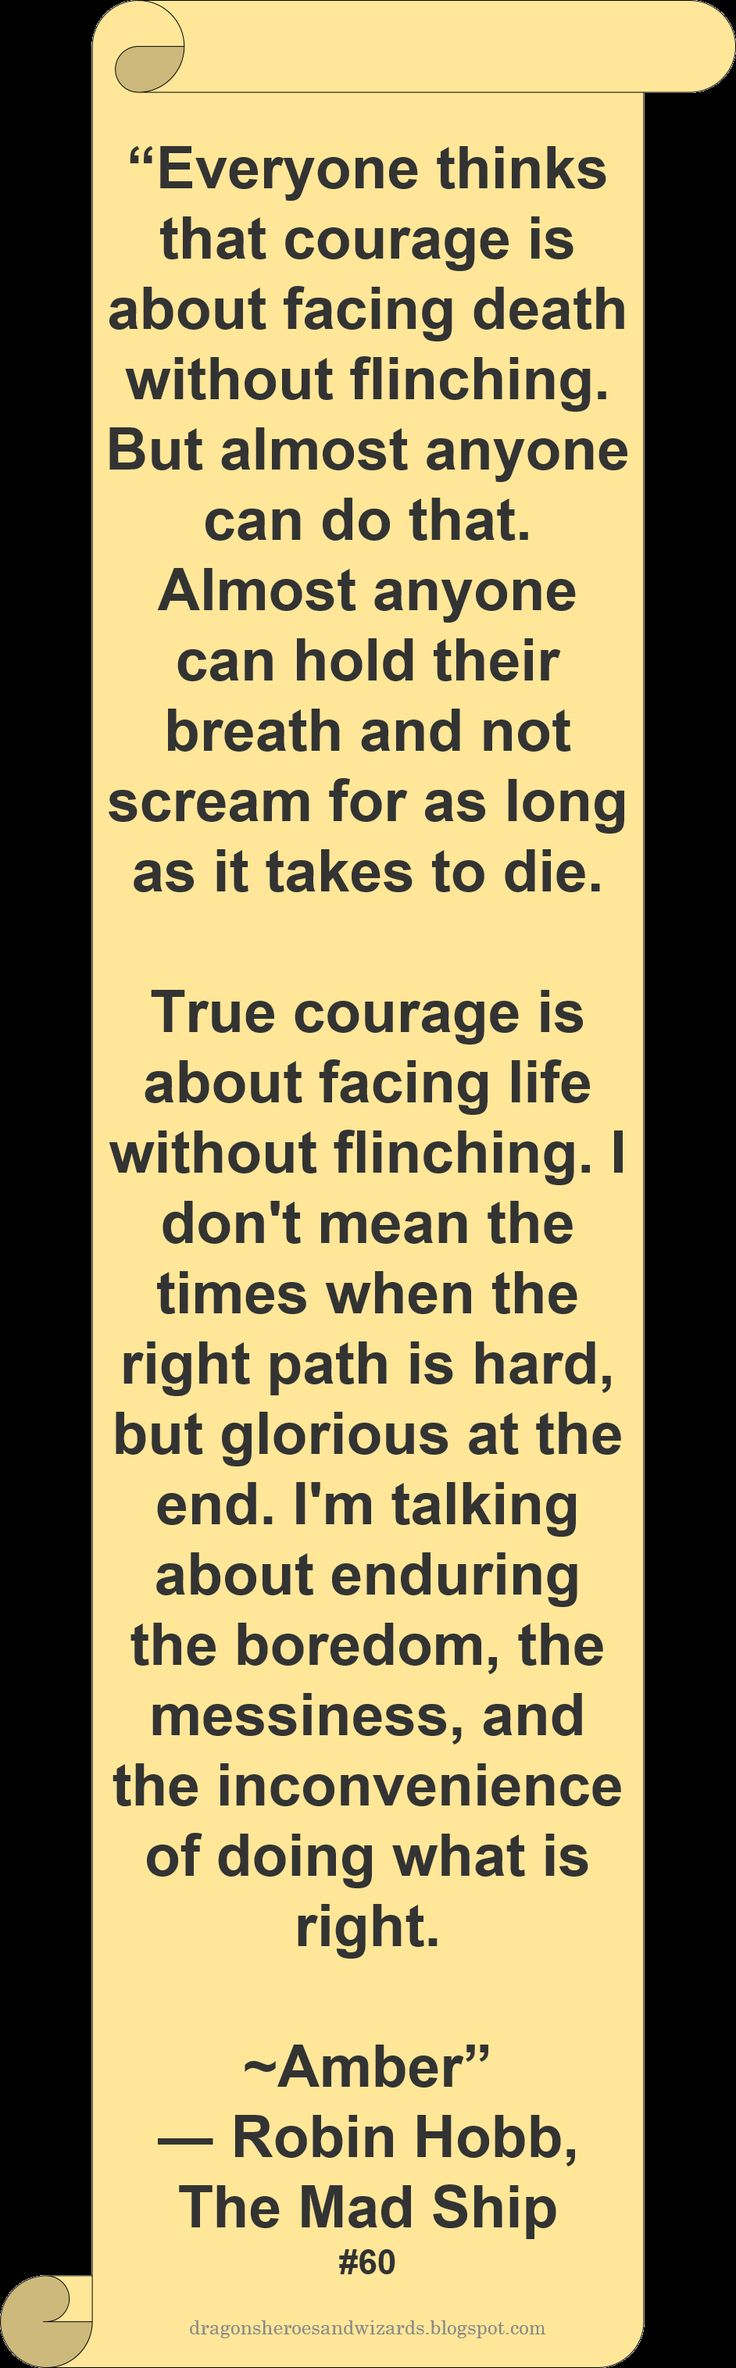 ♥ Robin_Hobb ♥ ~ #Quote #Author #Courage